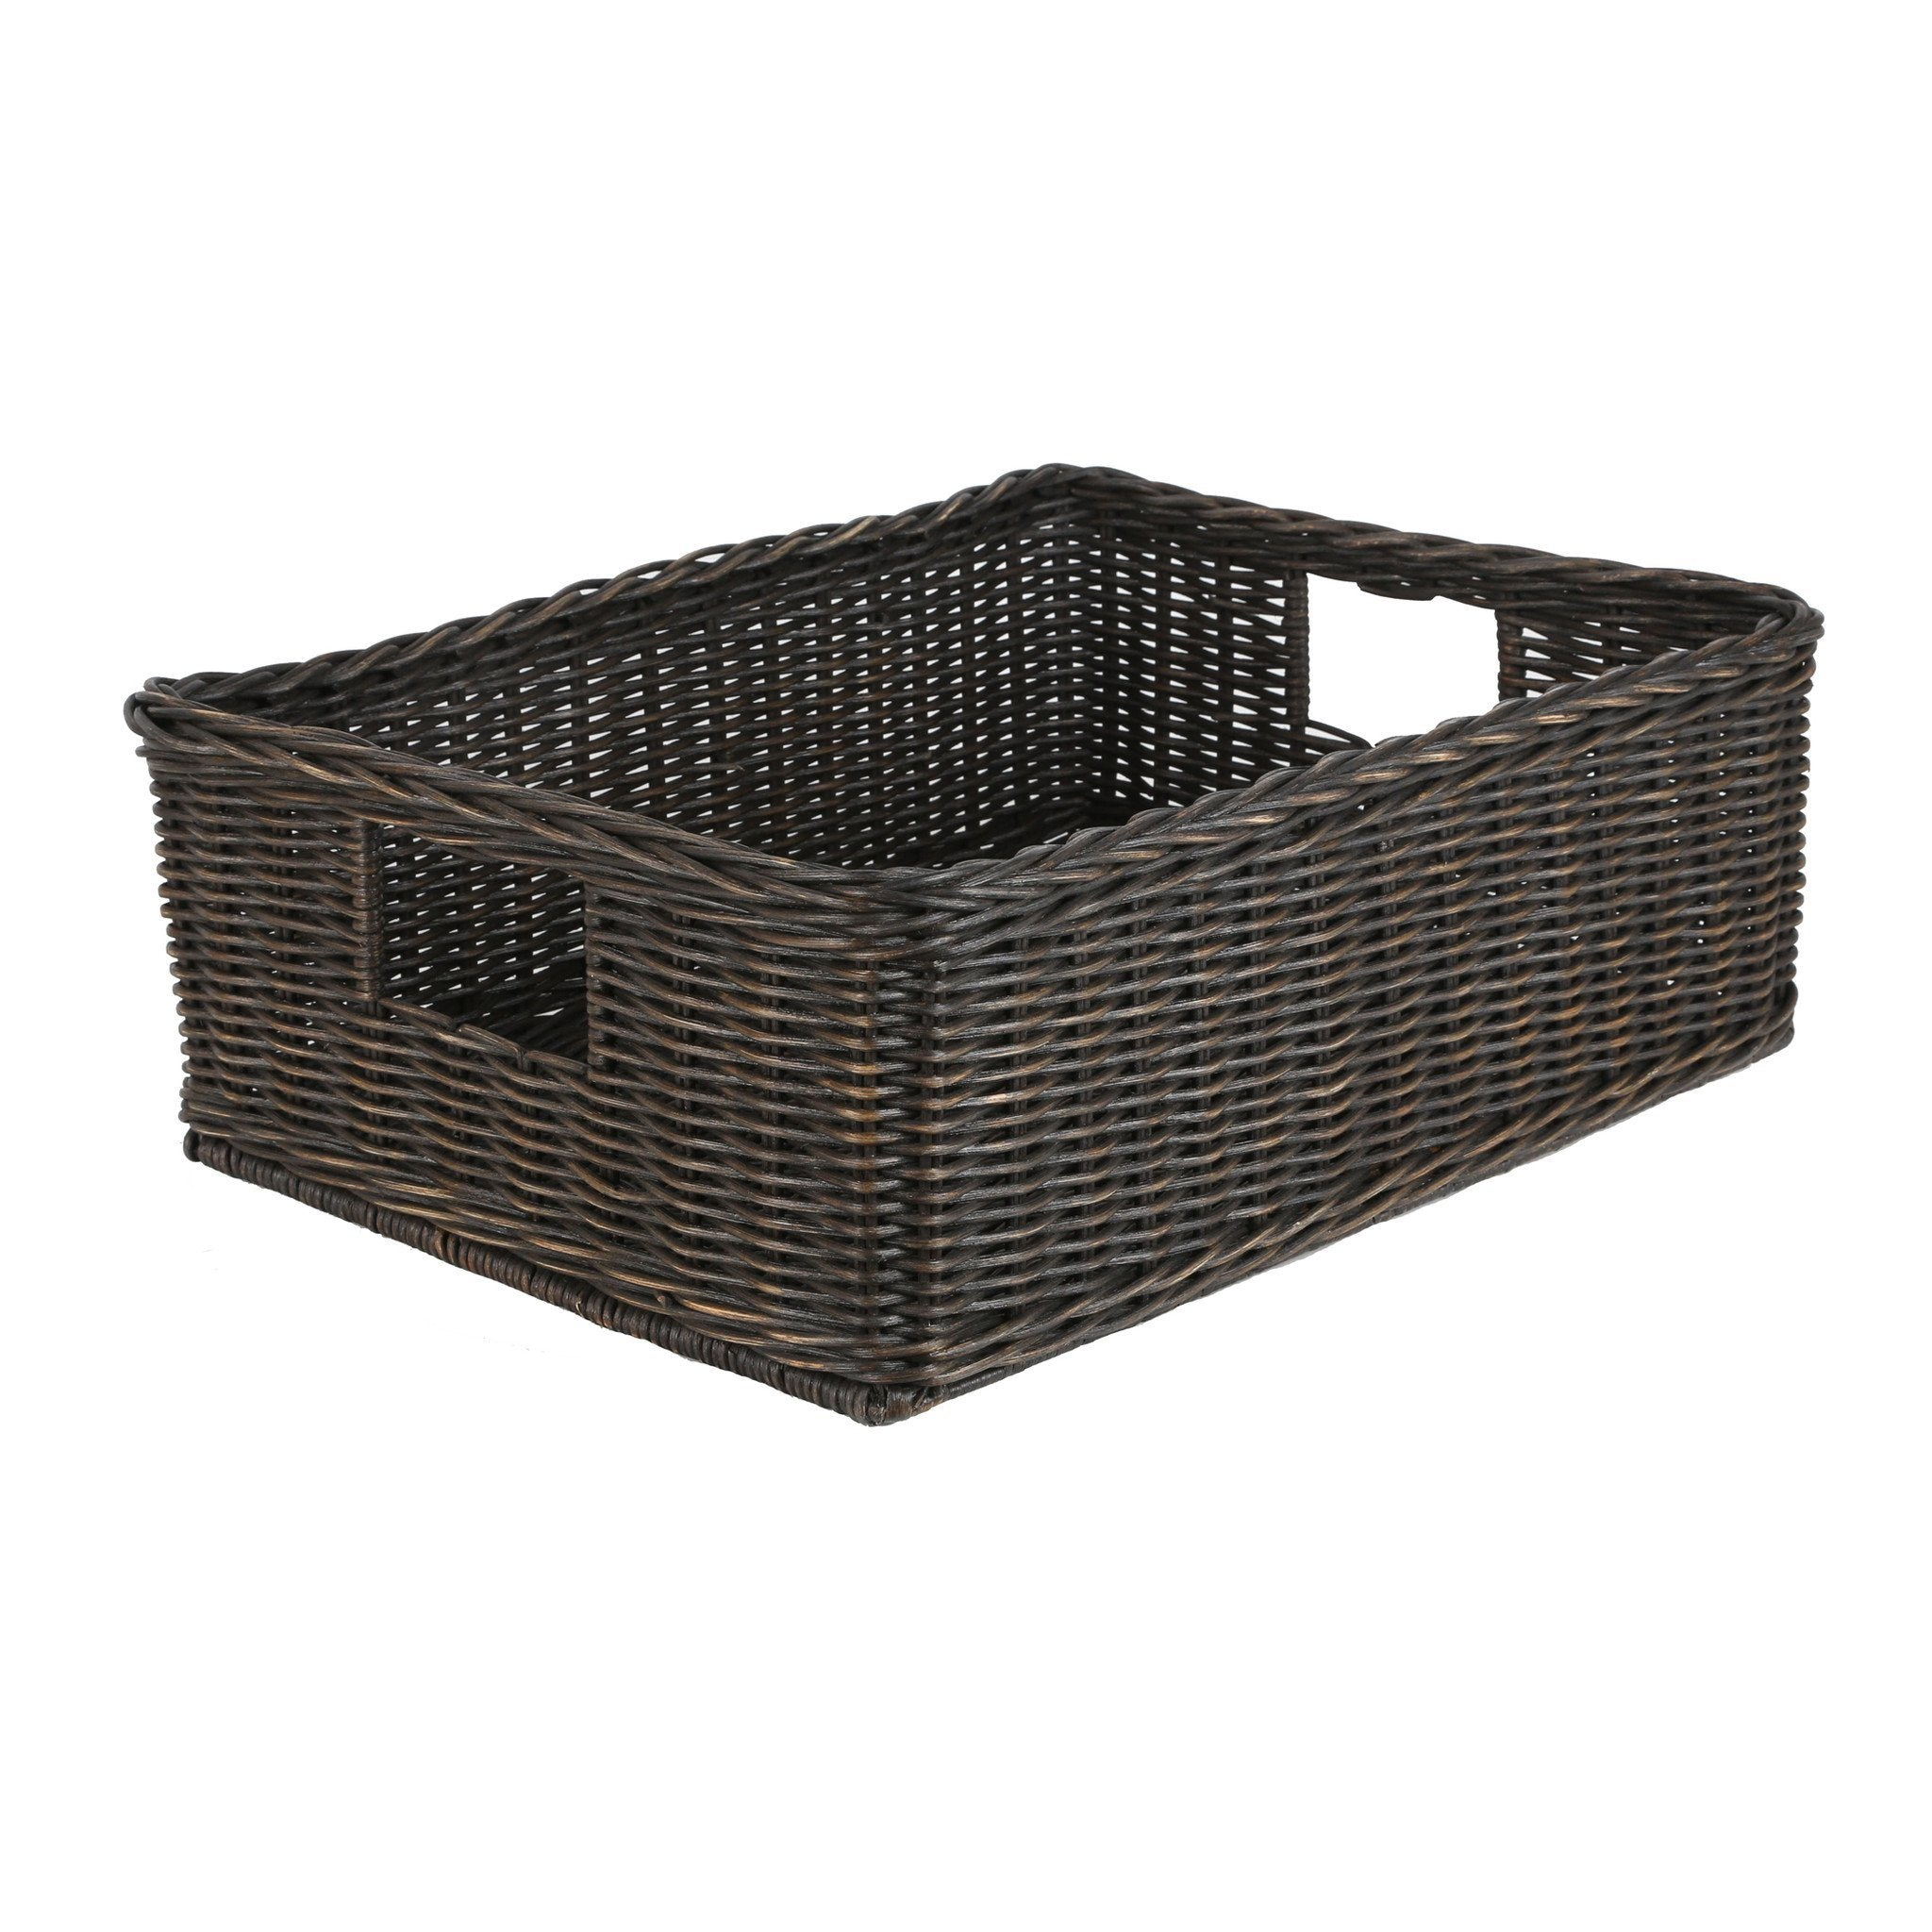 Delicieux ... The Basket Lady Underbed Wicker Storage Basket In Antique Walnut Brown  Size L From The Basket ...